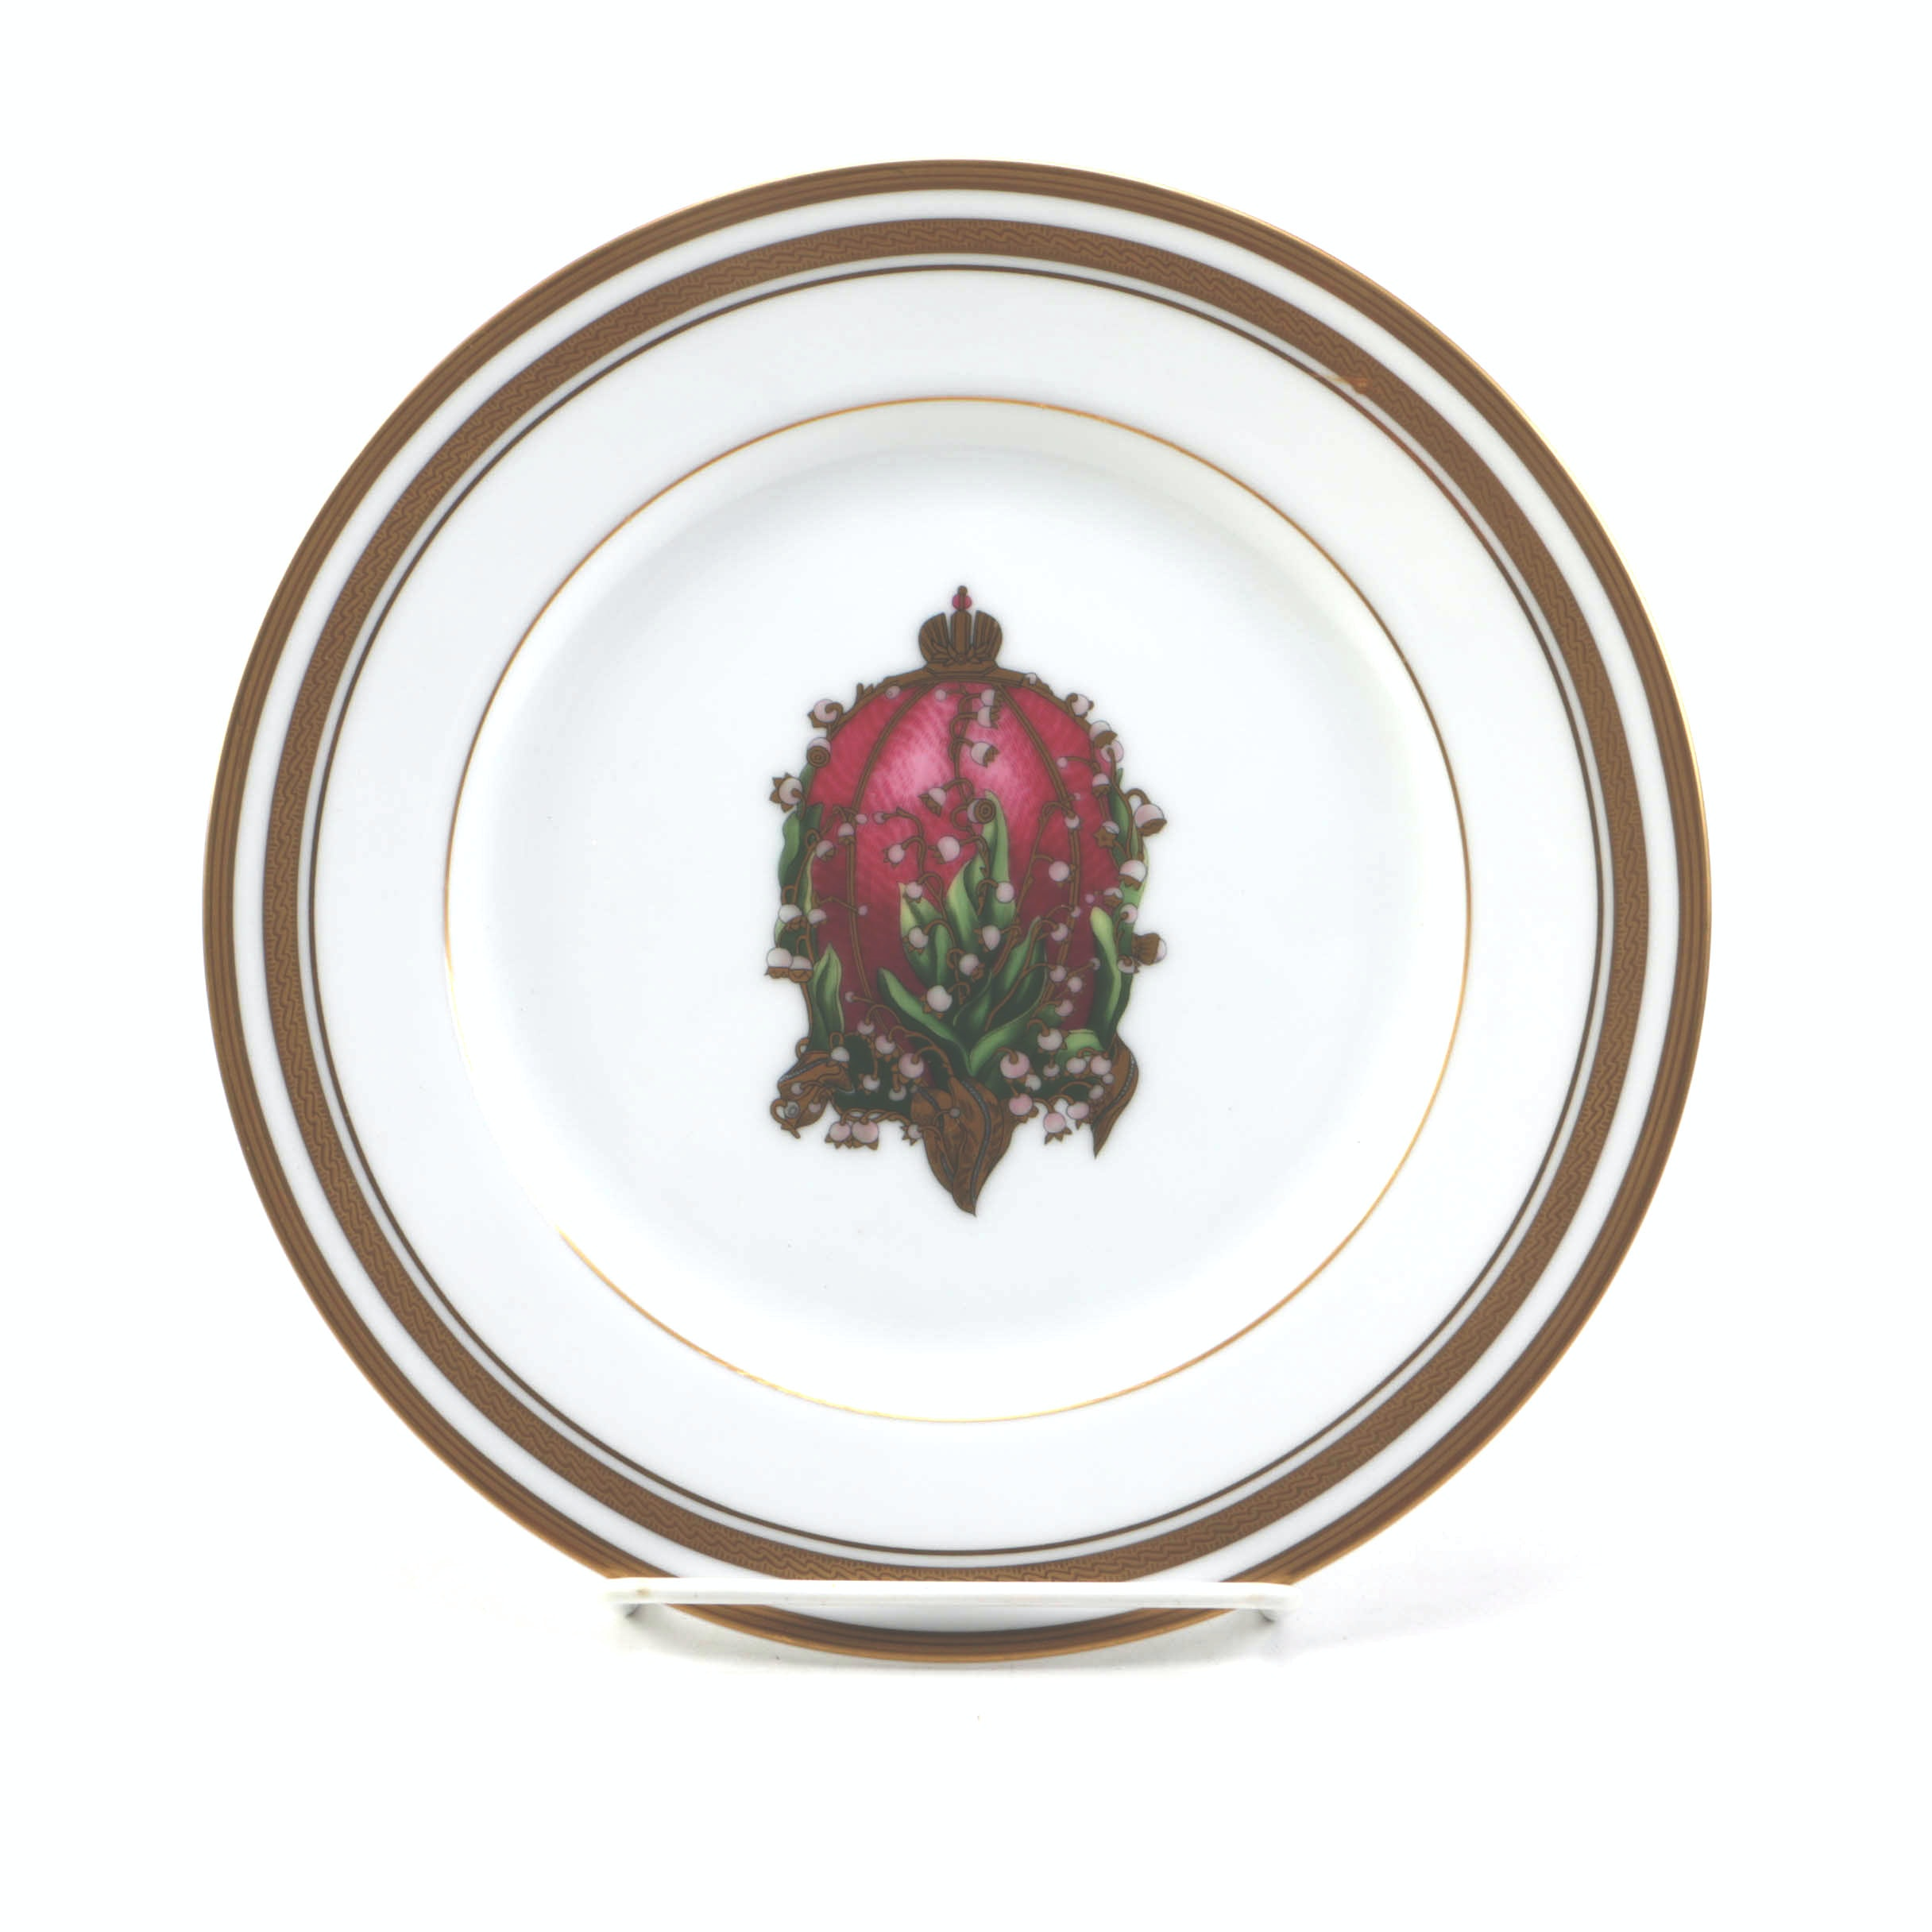 "Fabergé ""The Lilies of the Valley Egg"" Fine China Plate"